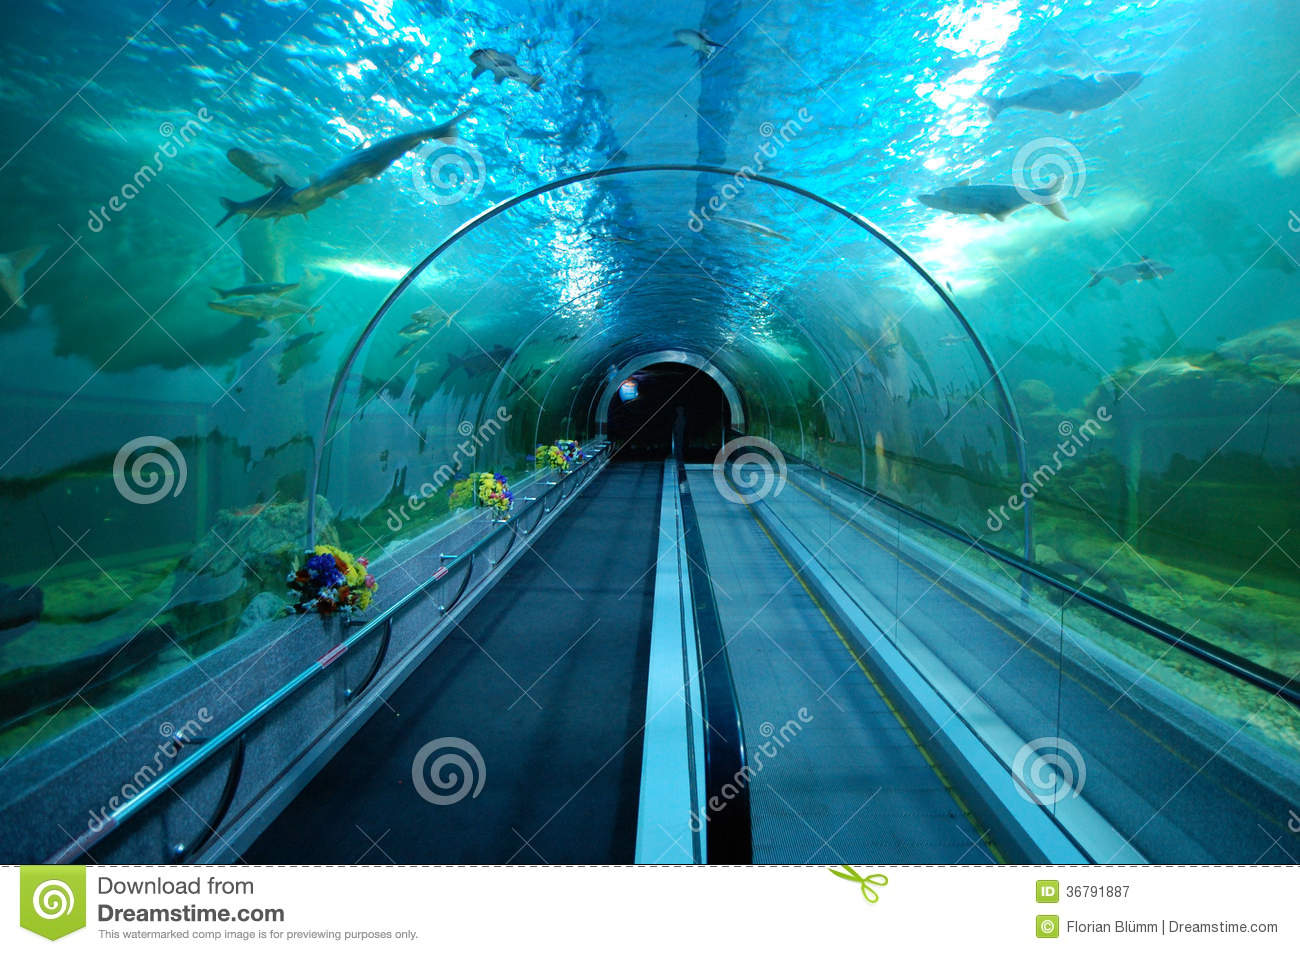 tunnel sous marin dans le grand aquarium de plain pied photographie stock libre de droits